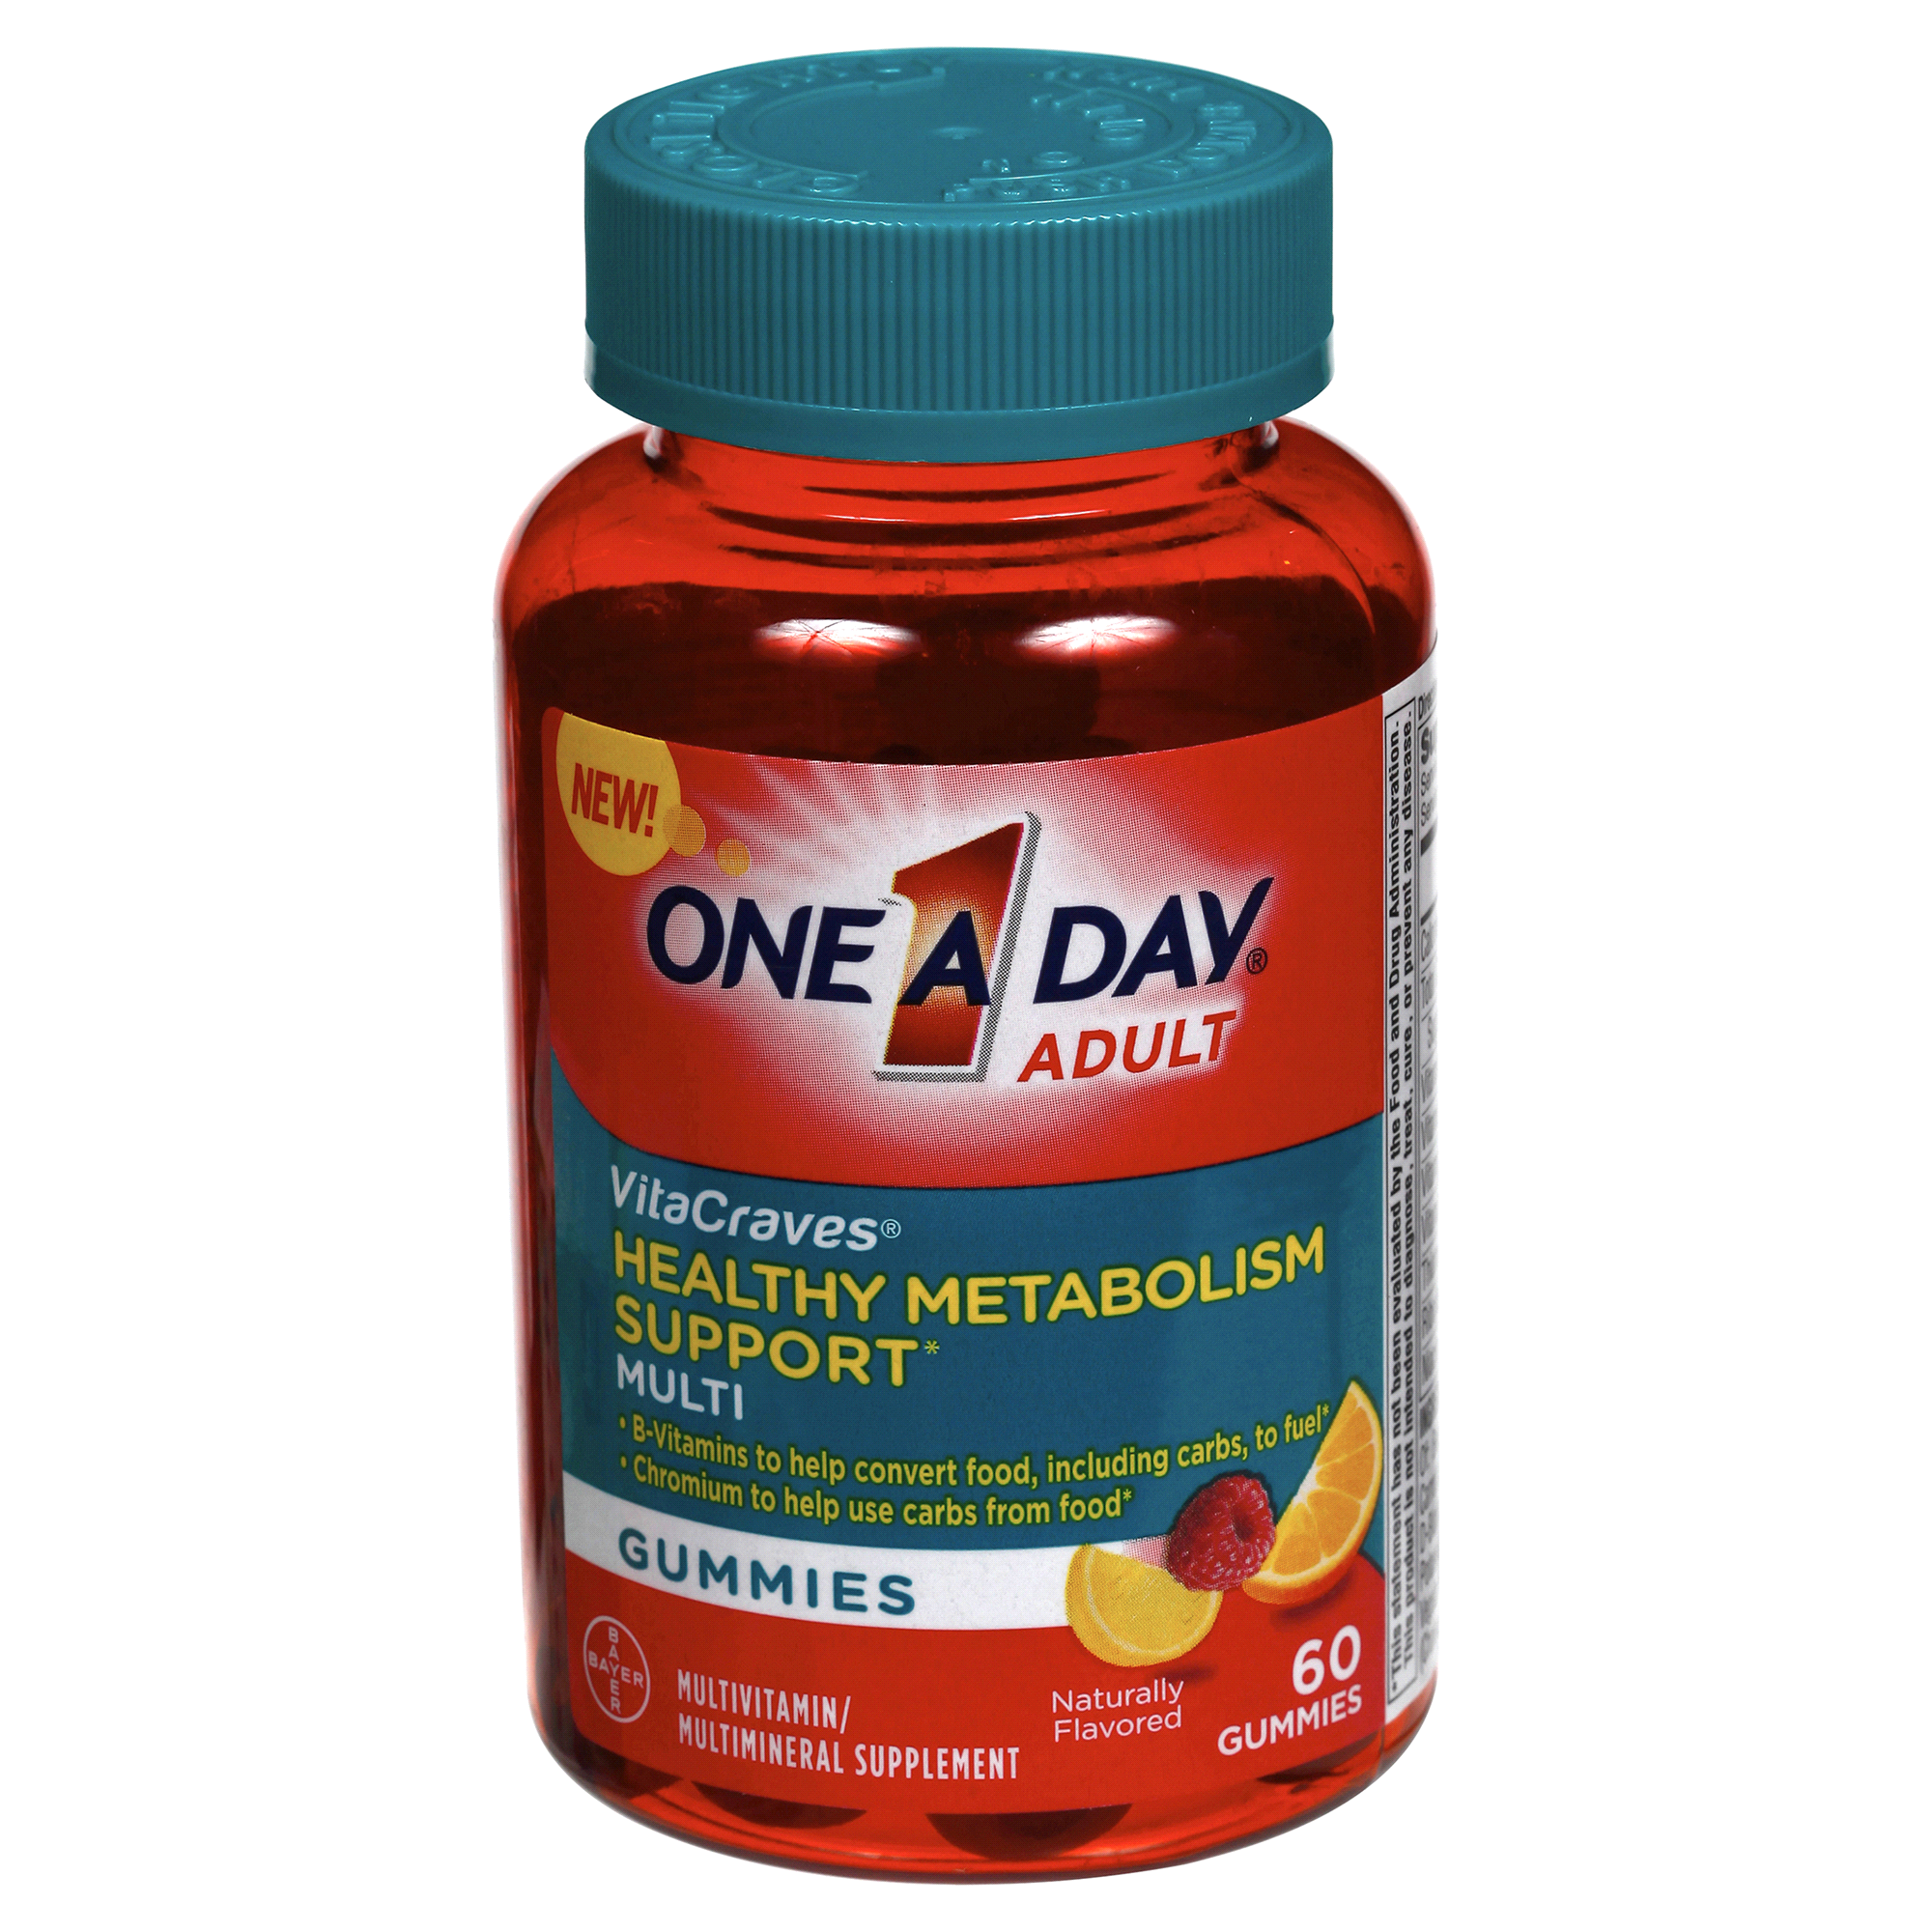 One A Day Adult Vitacraves Helathy Metabolism Support Gummies 60 Curcuma Rmulsion Blackcurrant Flavour Count